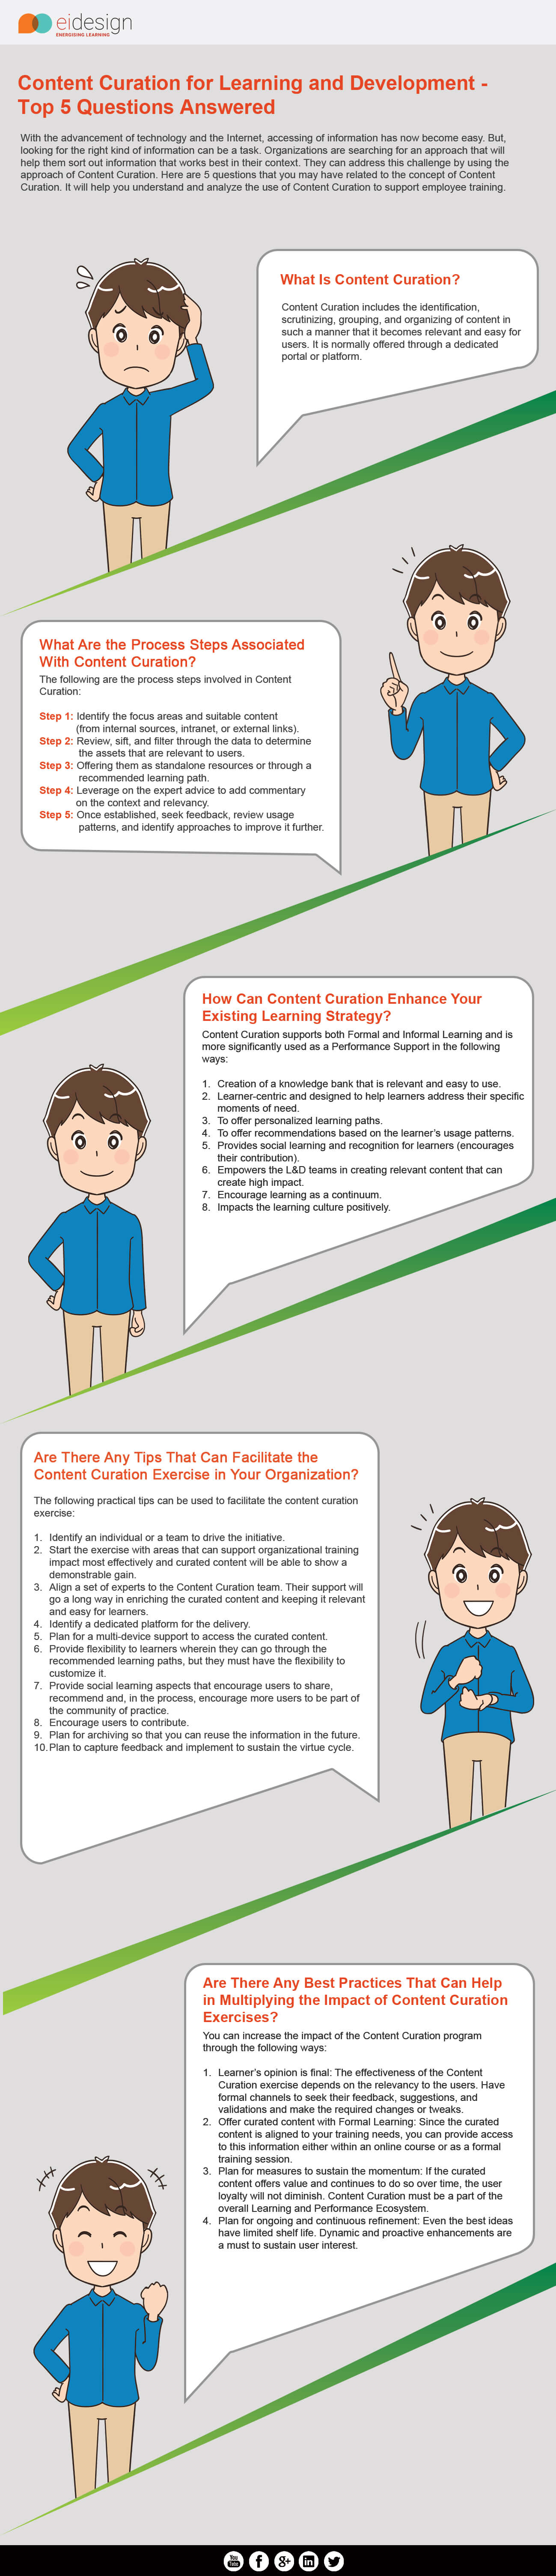 5-reasons-to-adopt-a-personalized-learning-plan-for-your-corporate-training-infographic